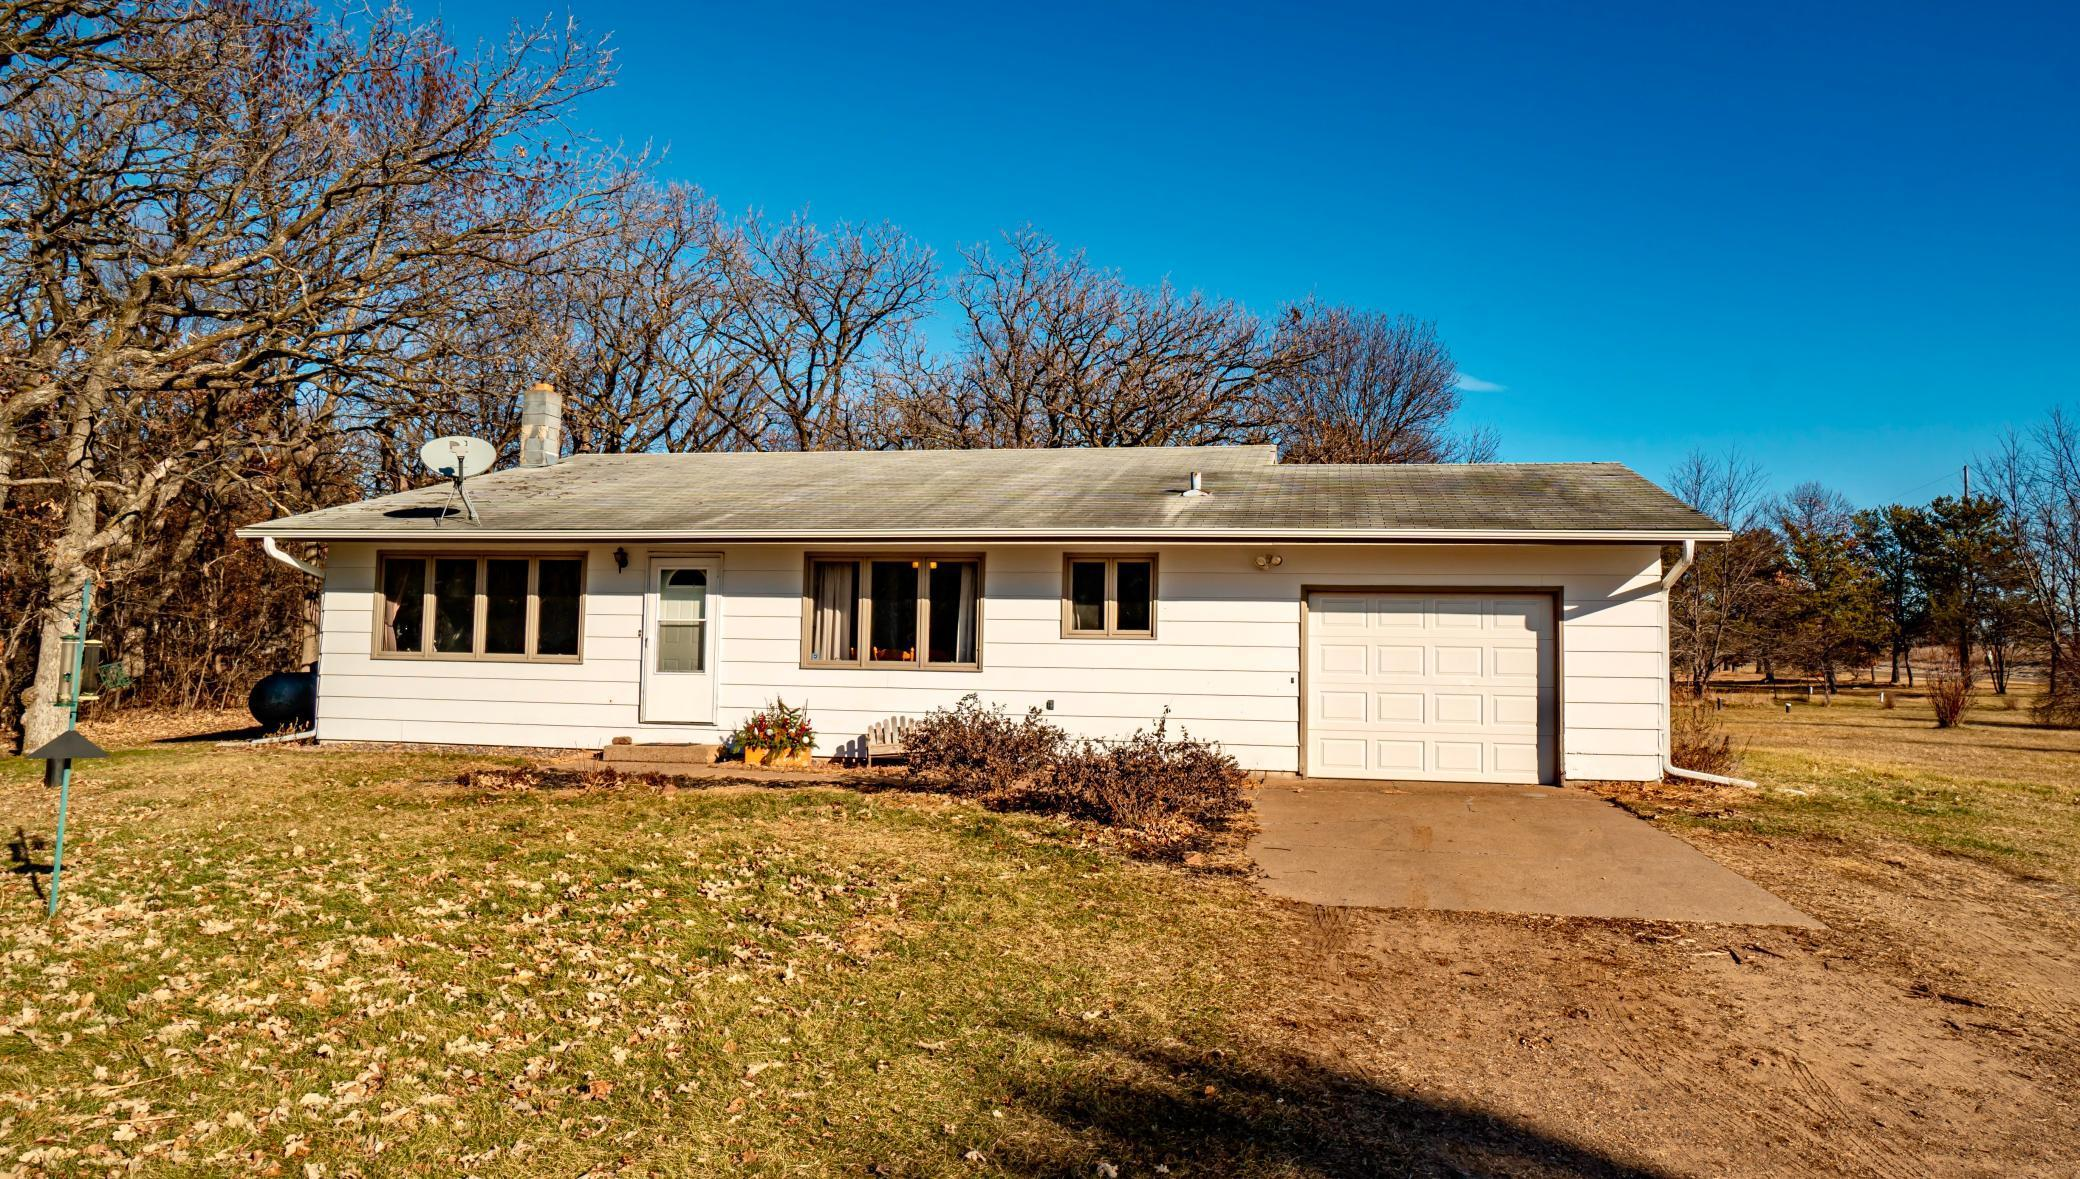 N8154 617th Street Property Photo - Colfax, WI real estate listing